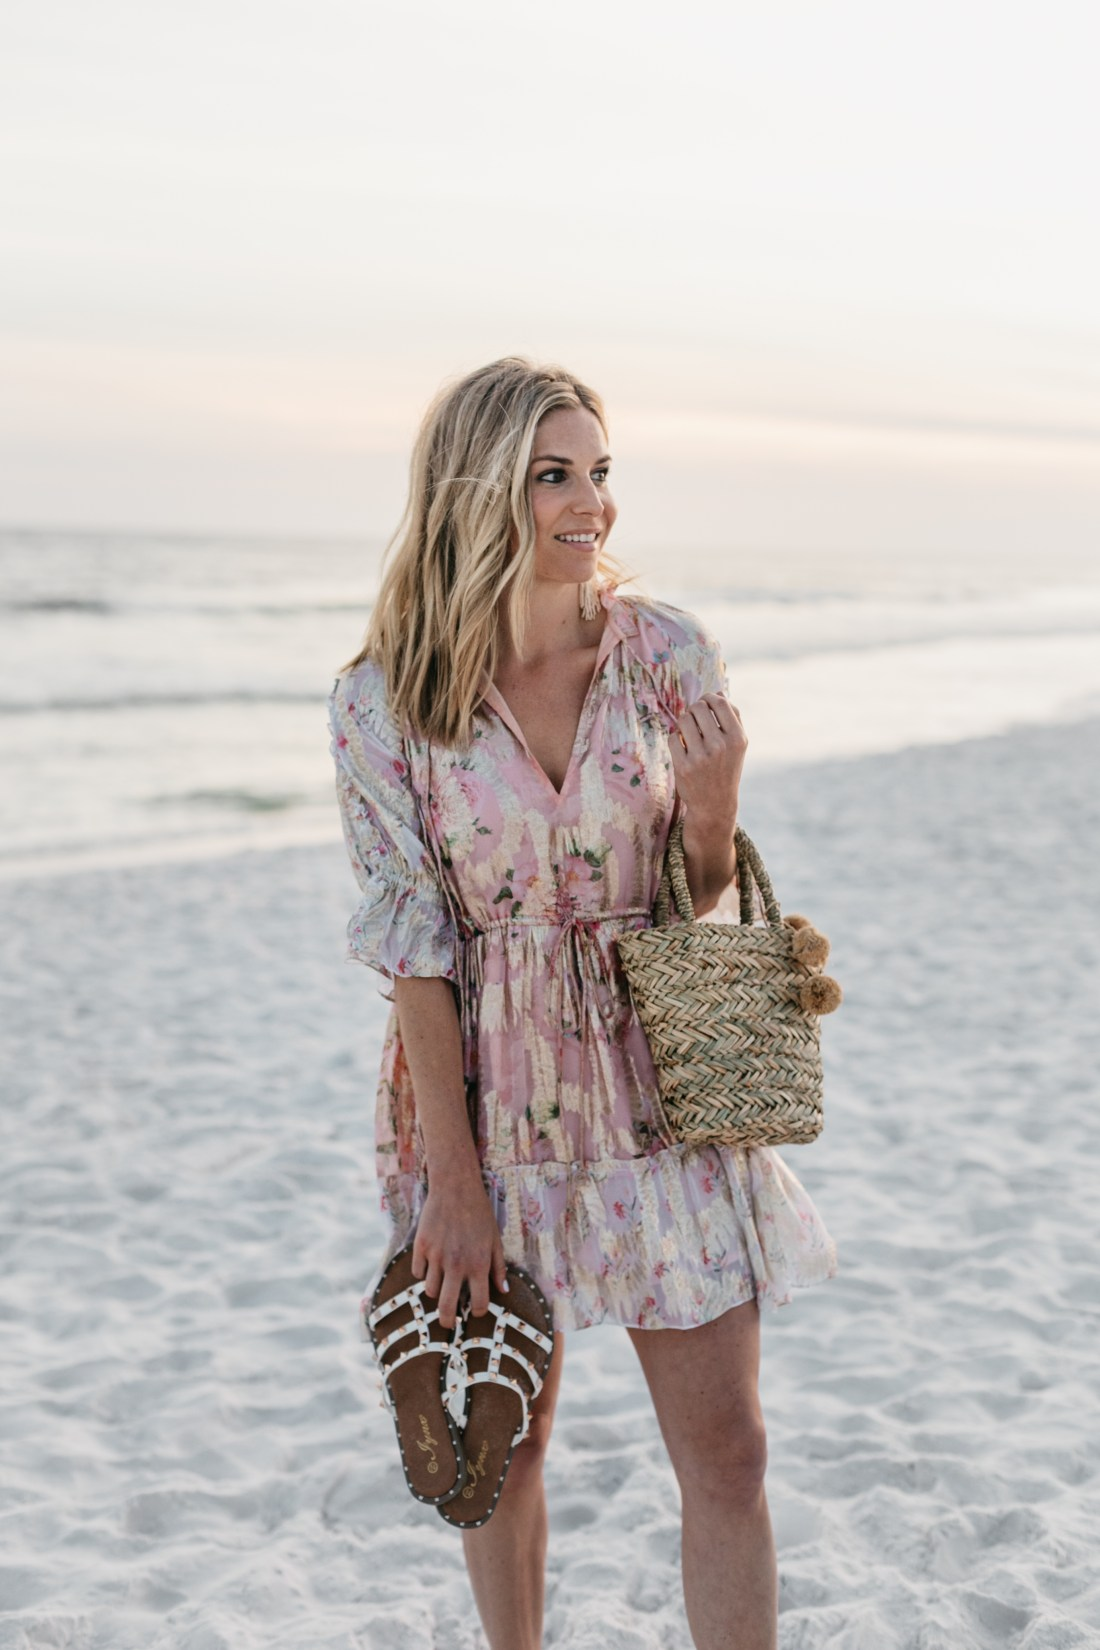 Brooke Burnett's outfit details: Blush Floral Dress // White Studded Sandals // Straw Bag // White Fringe Earrings